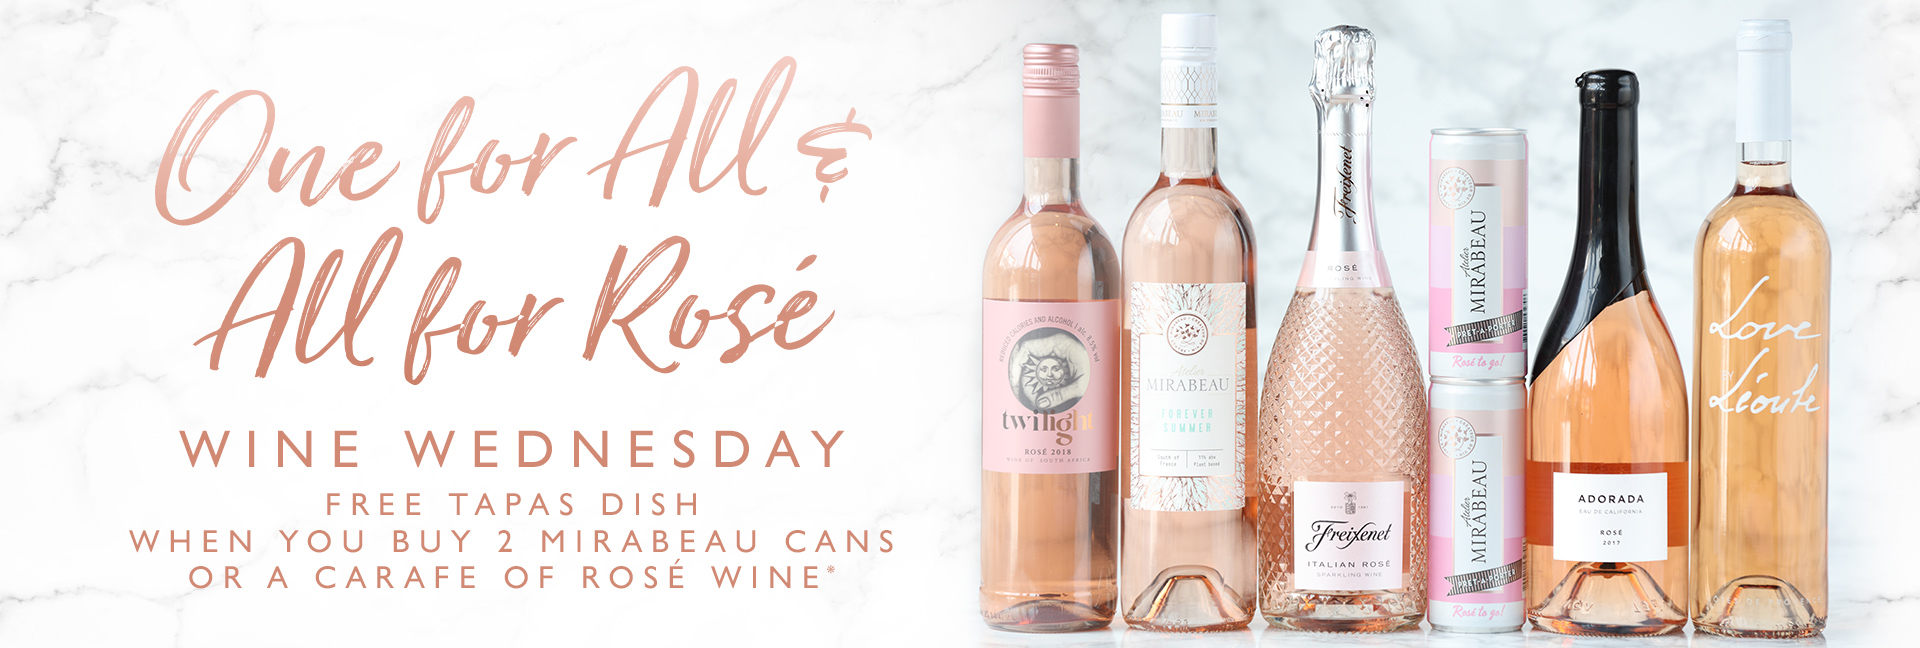 Wine Wednesday at All Bar One Canary Wharf